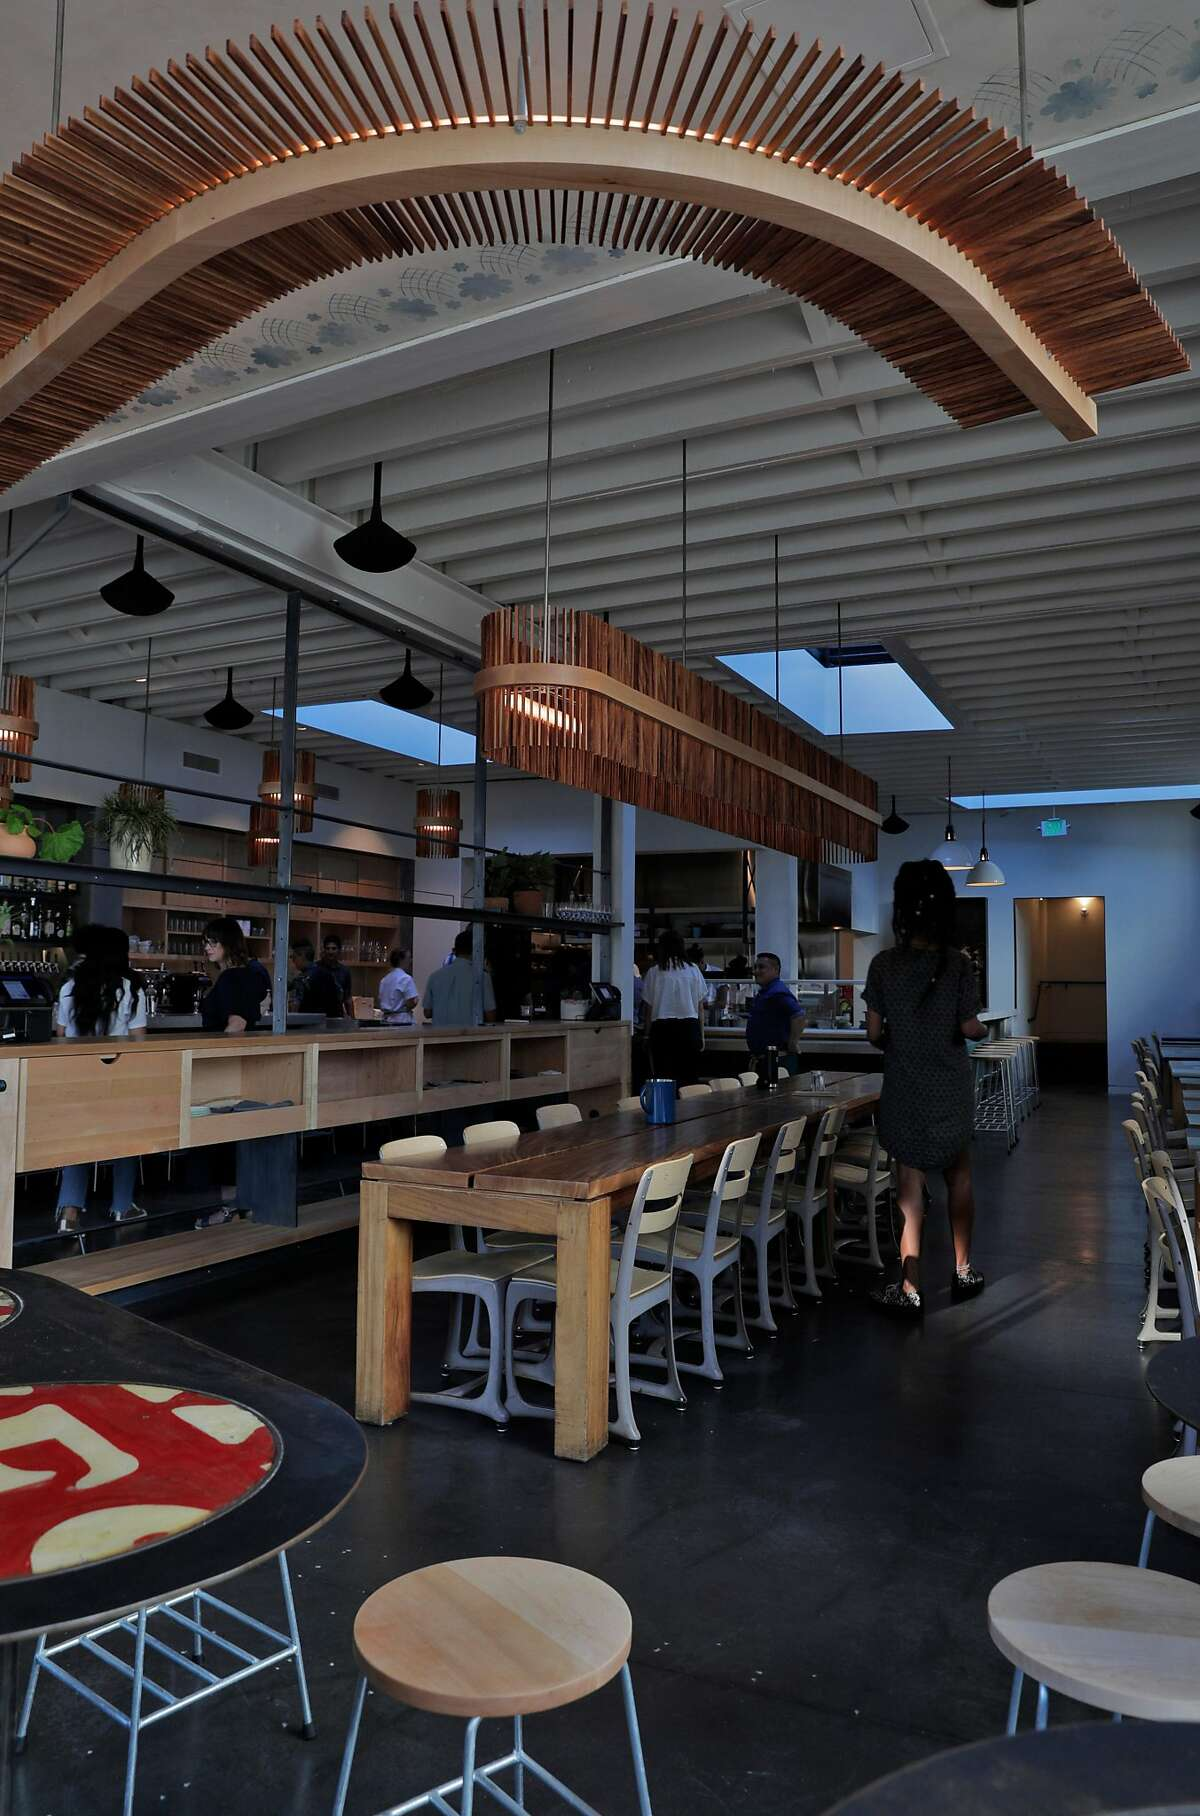 The dining room of Dear Inga, a new Eastern European restaurant opening on 18th Street in the Mission District in San Francisco, Calif., on Tuesday, September 24, 2019. The restaurant is named after the chef David Golovin's grandmother.